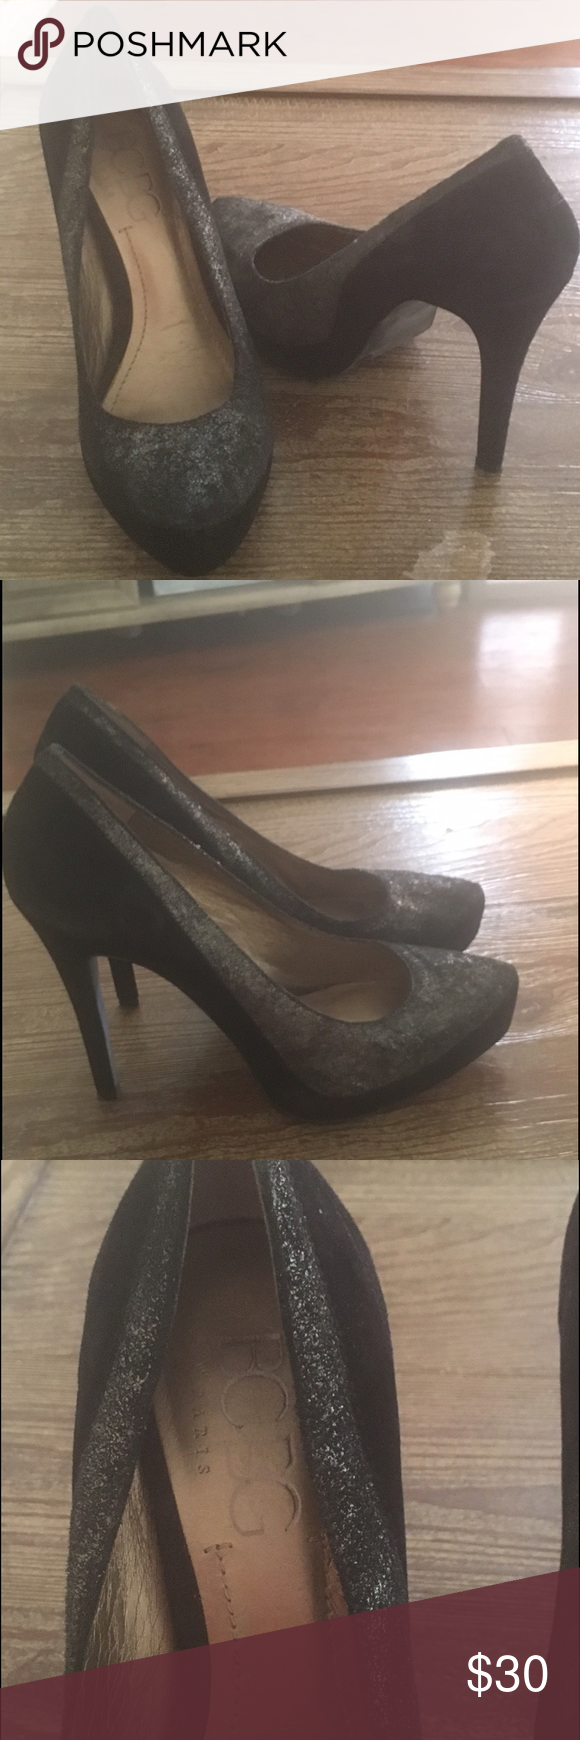 Black BCBG Heels Black BCBG Heels in good shape and super comfortable. Very shuttle light specs of gold. One of my favorite pairs of heels when I was able to wear them because they match with so much and are so comfortable! BCBG Shoes Heels